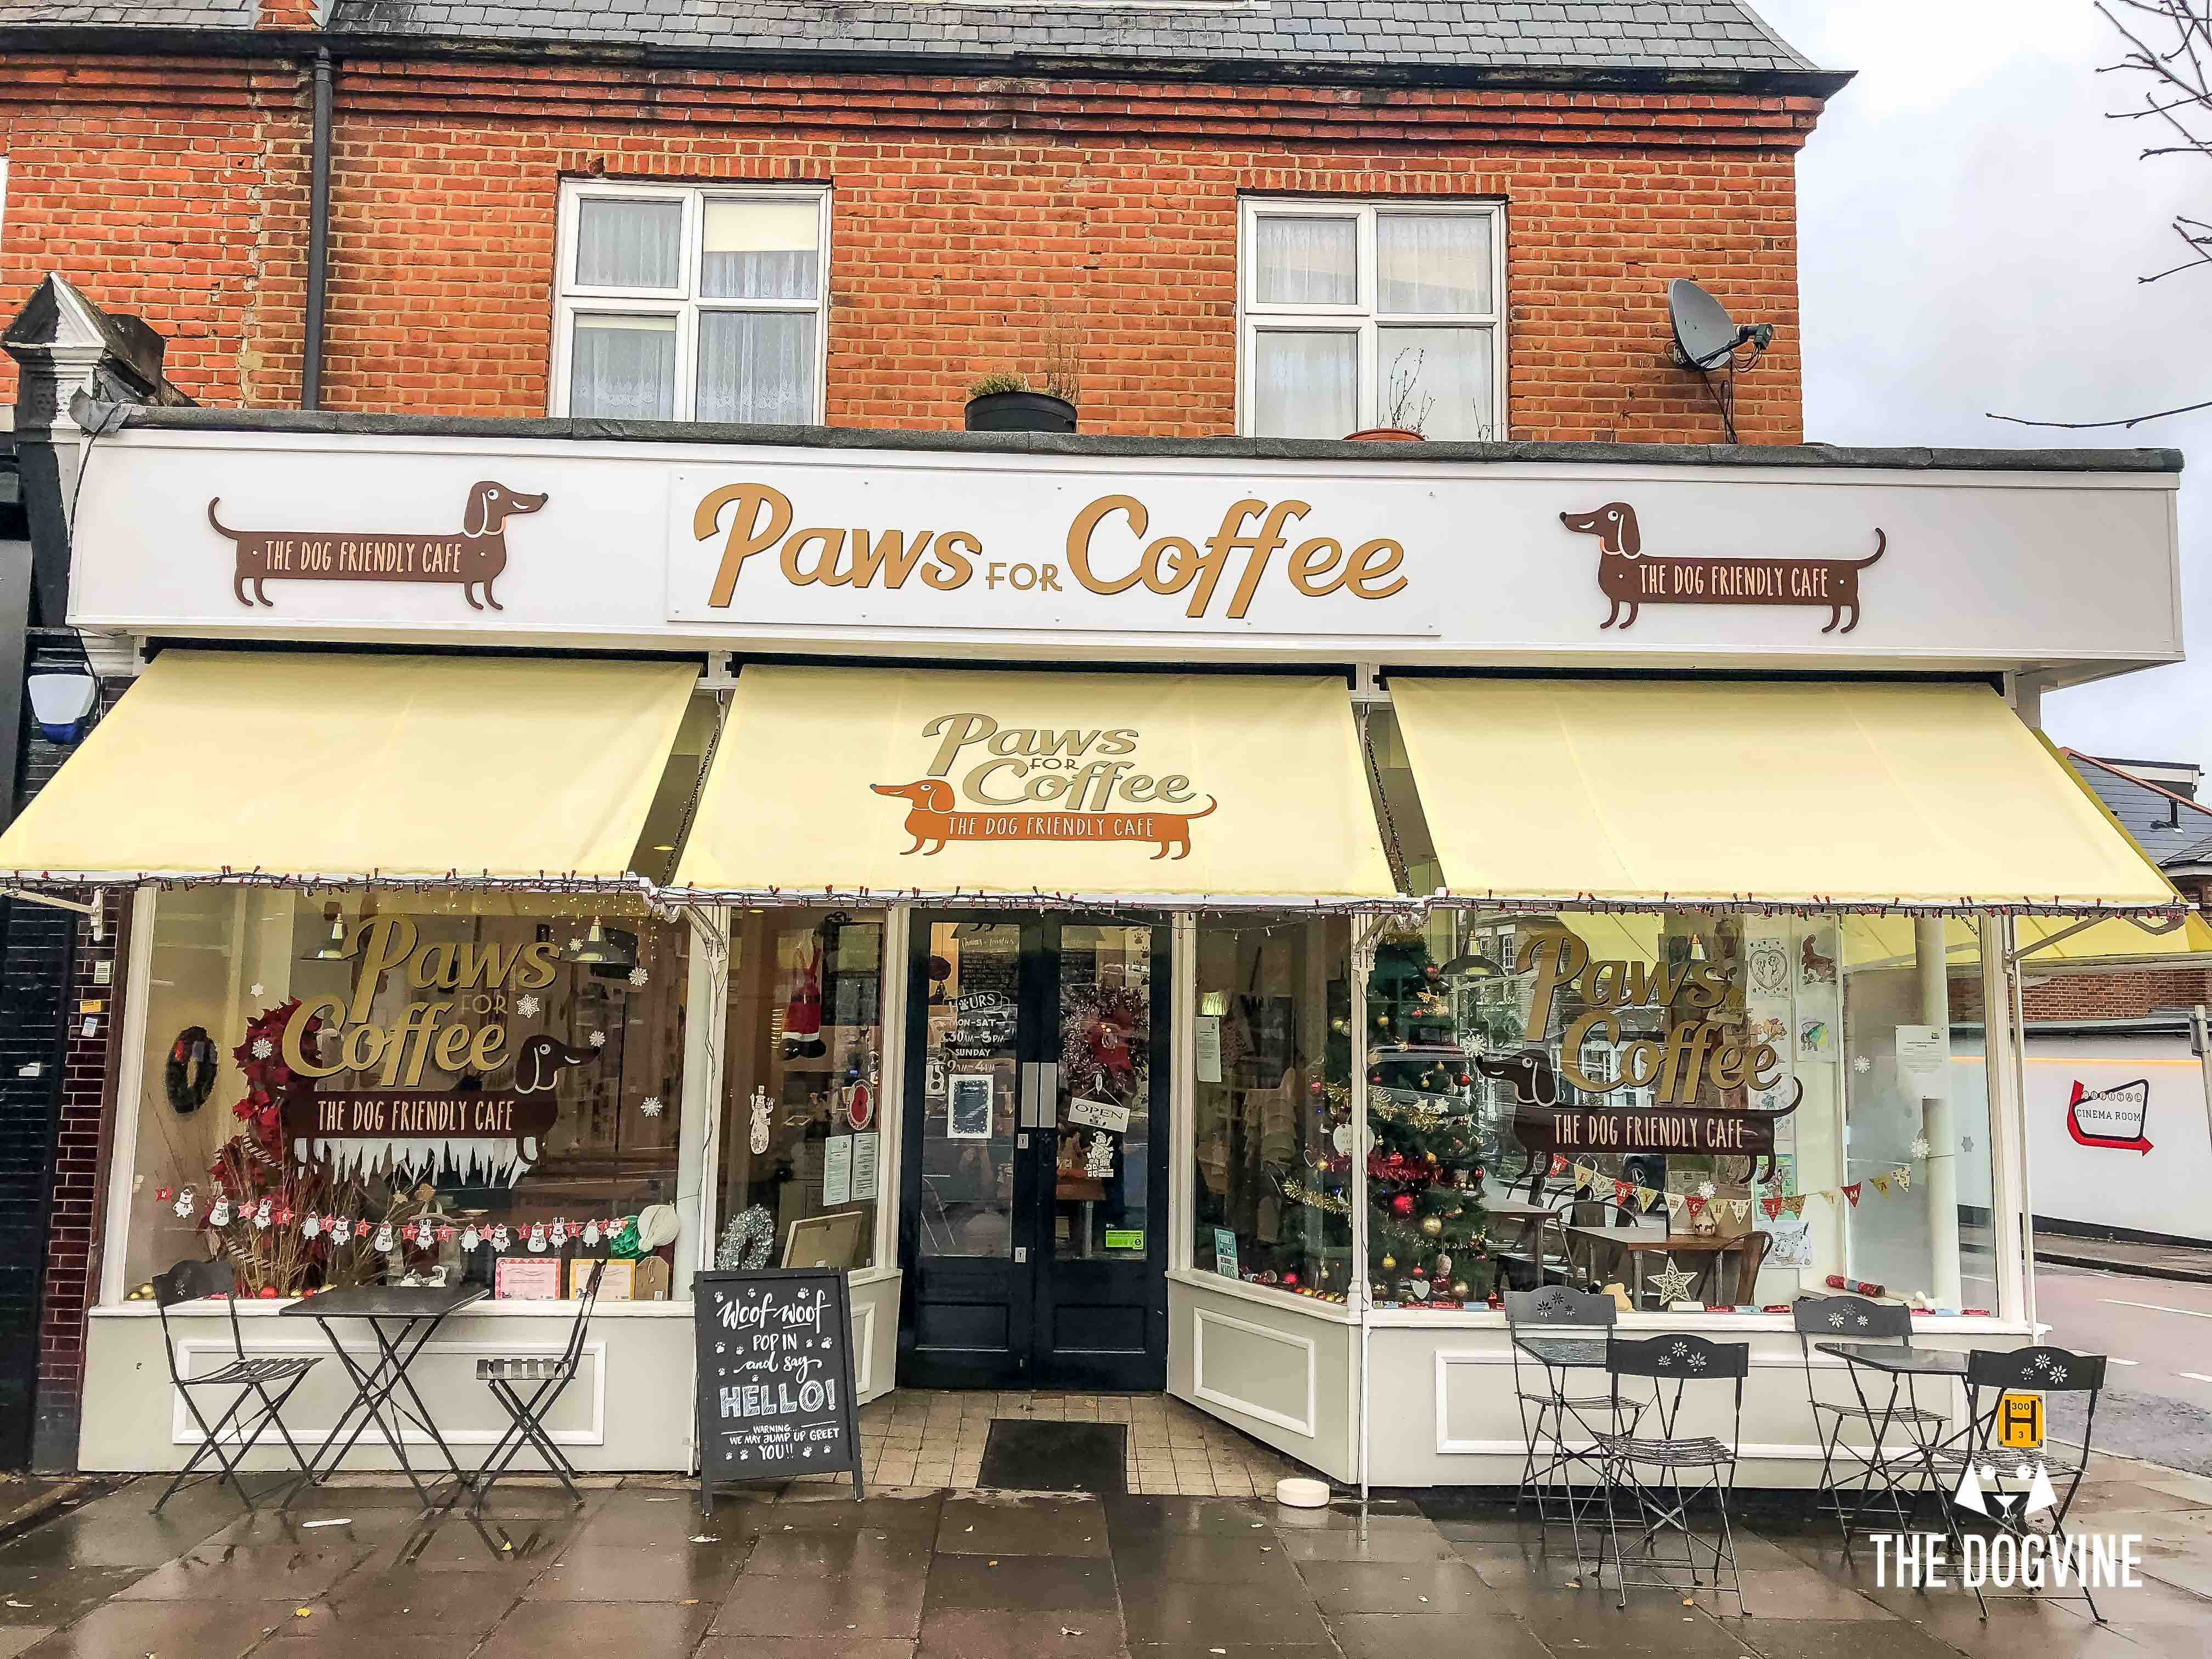 Refuel With Your Pooch At The Dog Friendly Cafe Paws For Coffee